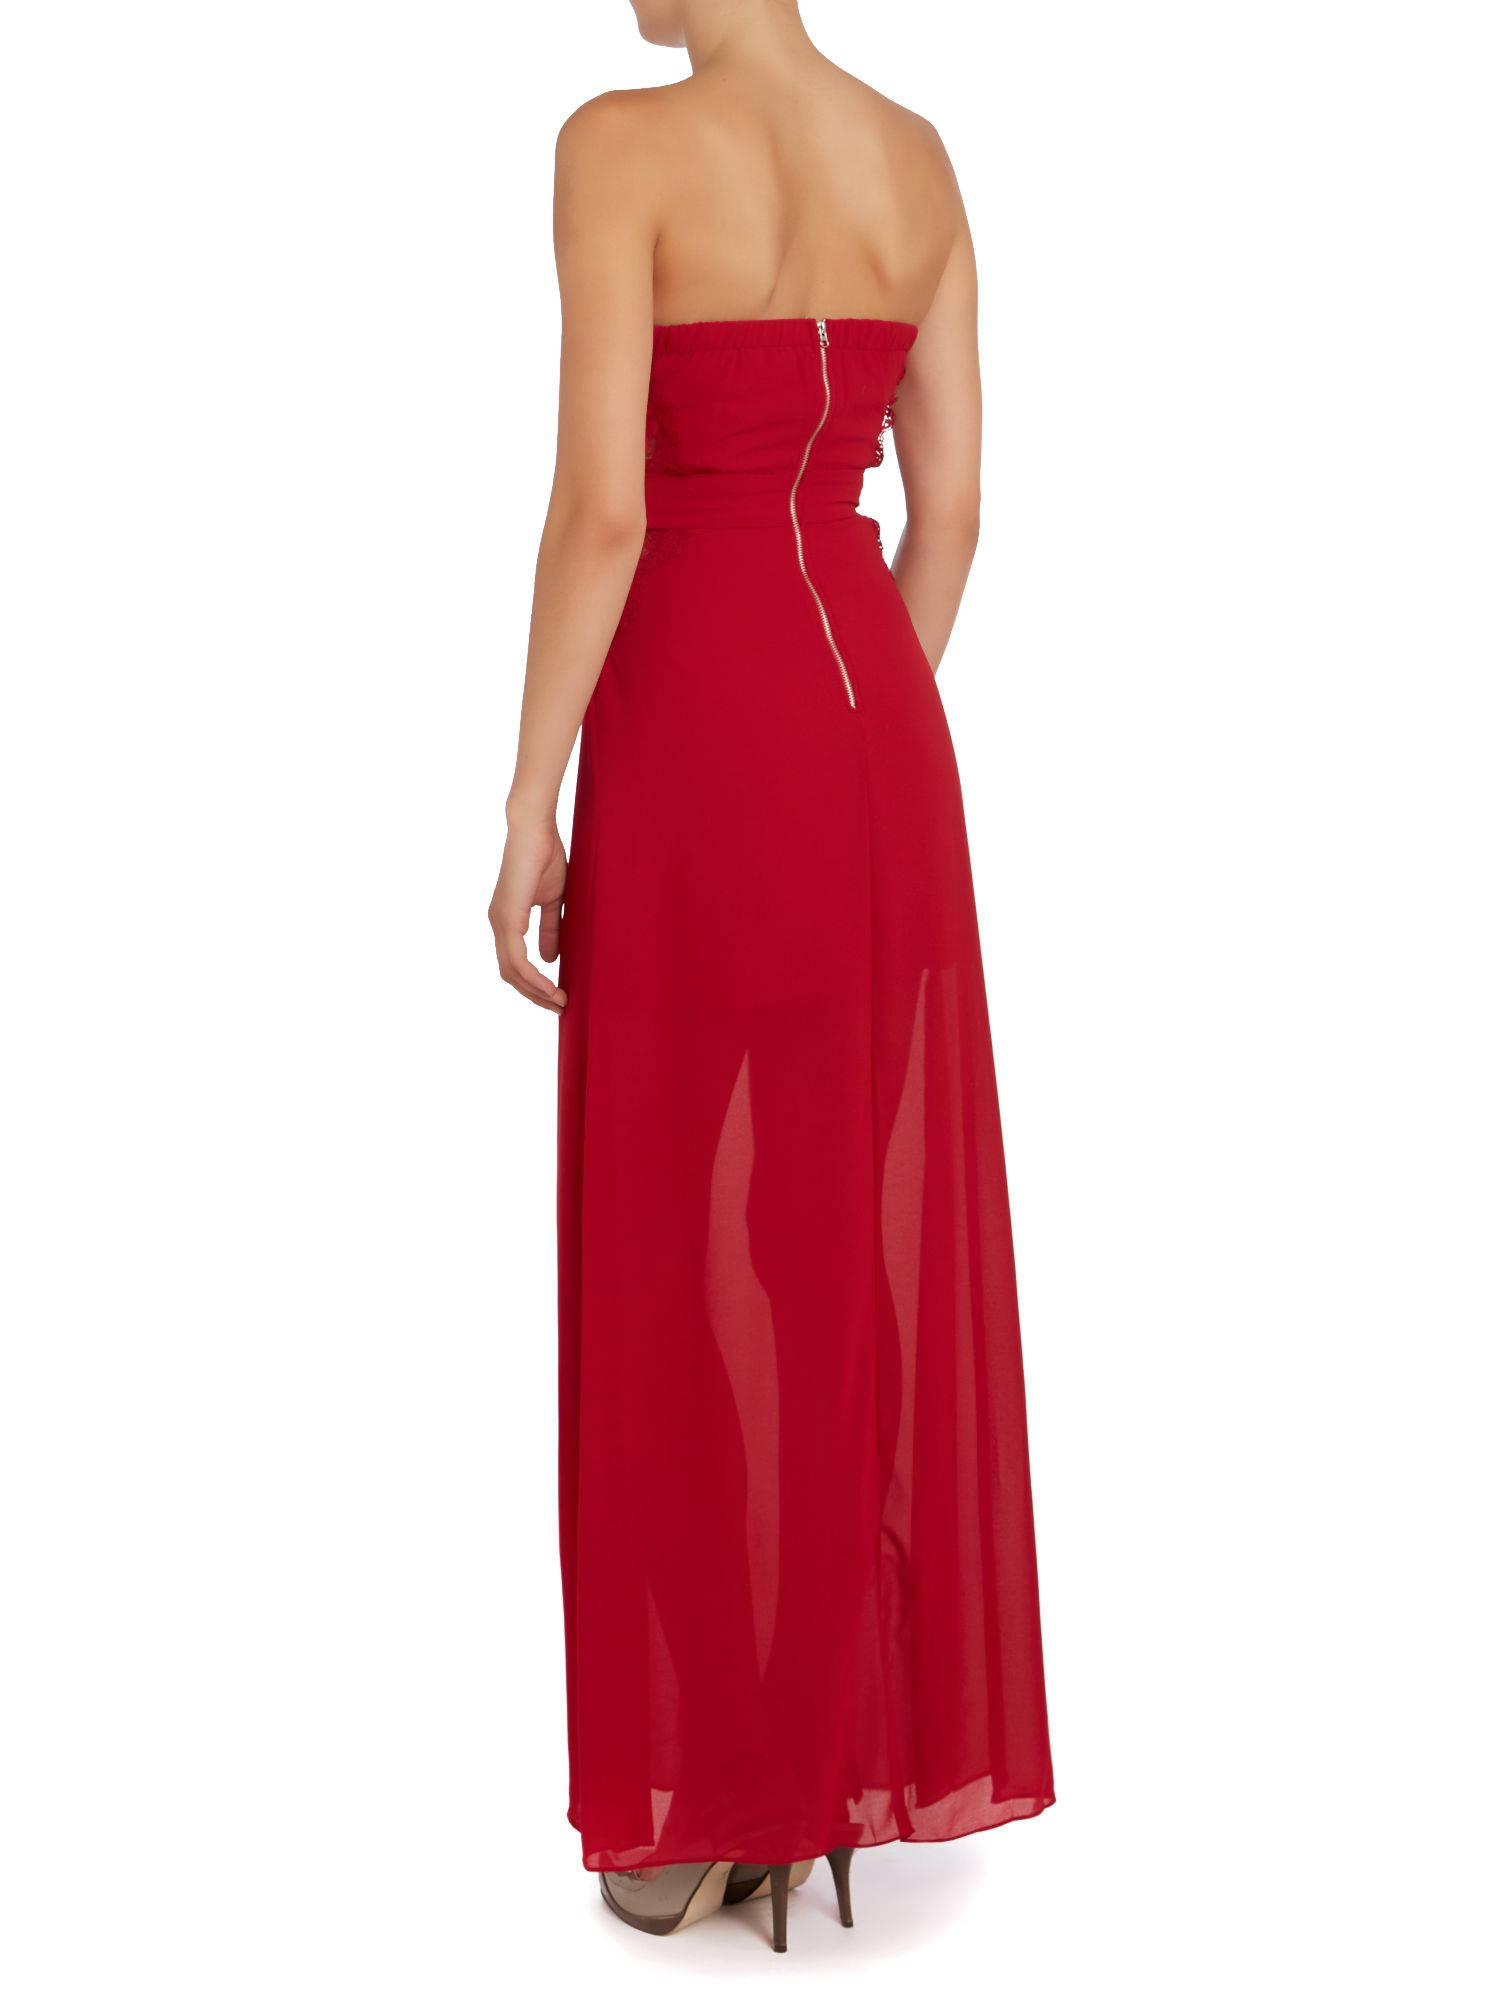 Tfnc london Strapless Lace Insert Maxi Dress in Red | Lyst